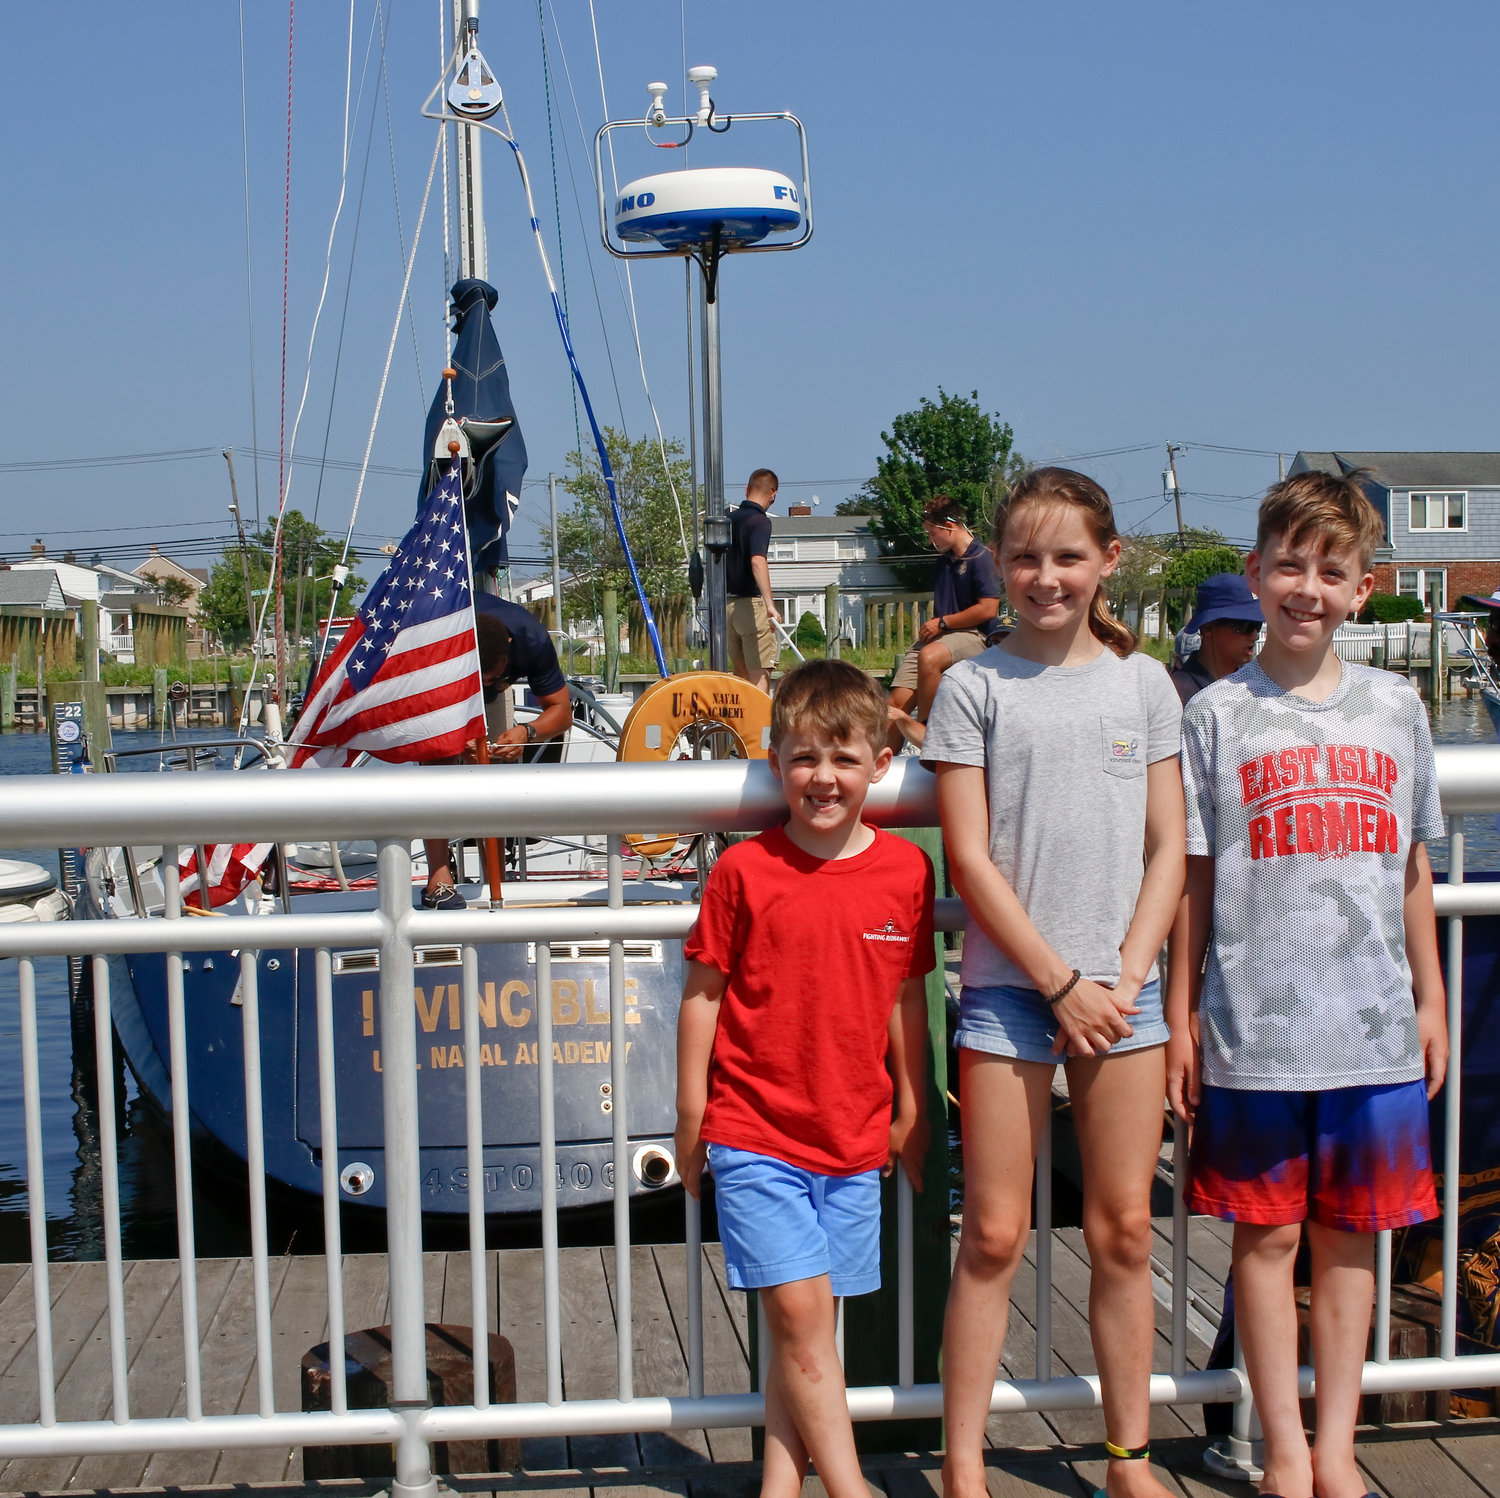 Twenty-one years ago, Freeport native Colleen Minihan, then a Midshipmen, made the inaugural trip from Annapolis to to Freeport. This year, her children, Owen and Page, ages 6 and 11, and their cousin Liam Kennedy, 9, watched this year's arrival.